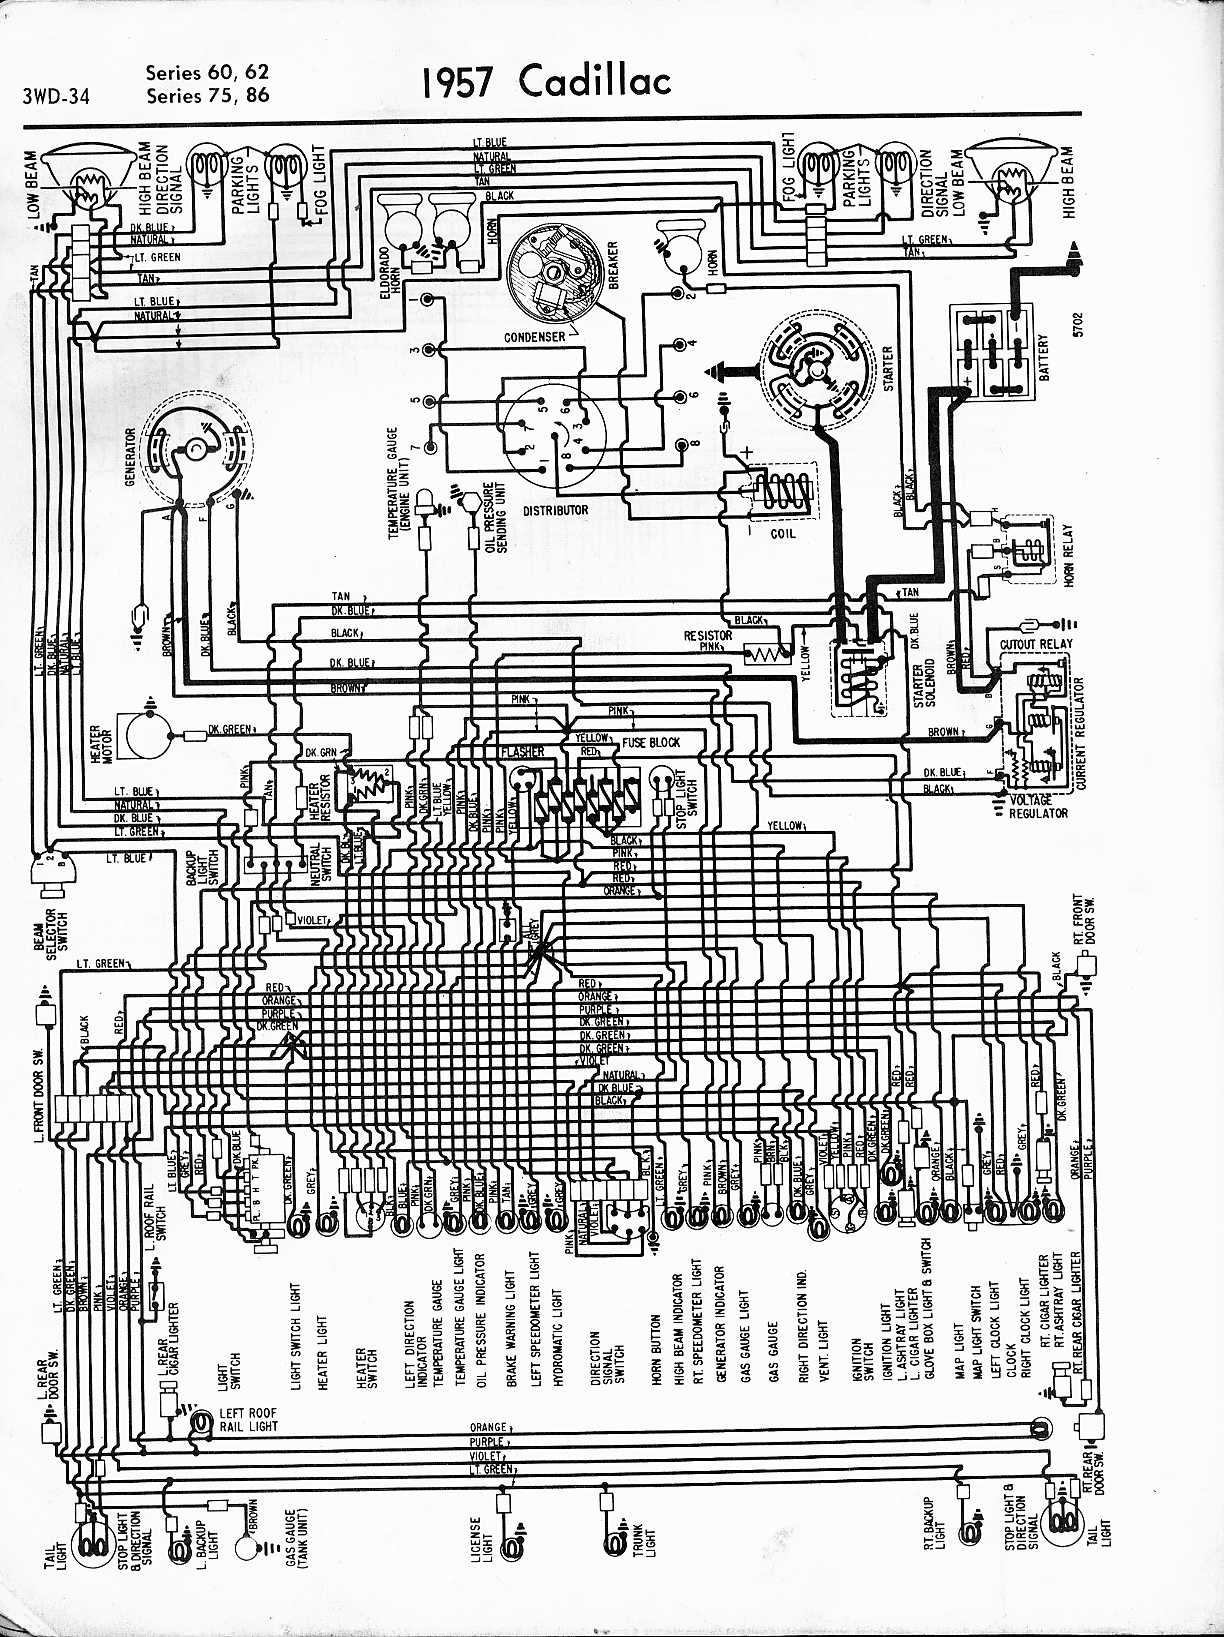 Magnificent Cadillac Wiring Diagram Basic Electronics Wiring Diagram Wiring Cloud Timewinrebemohammedshrineorg